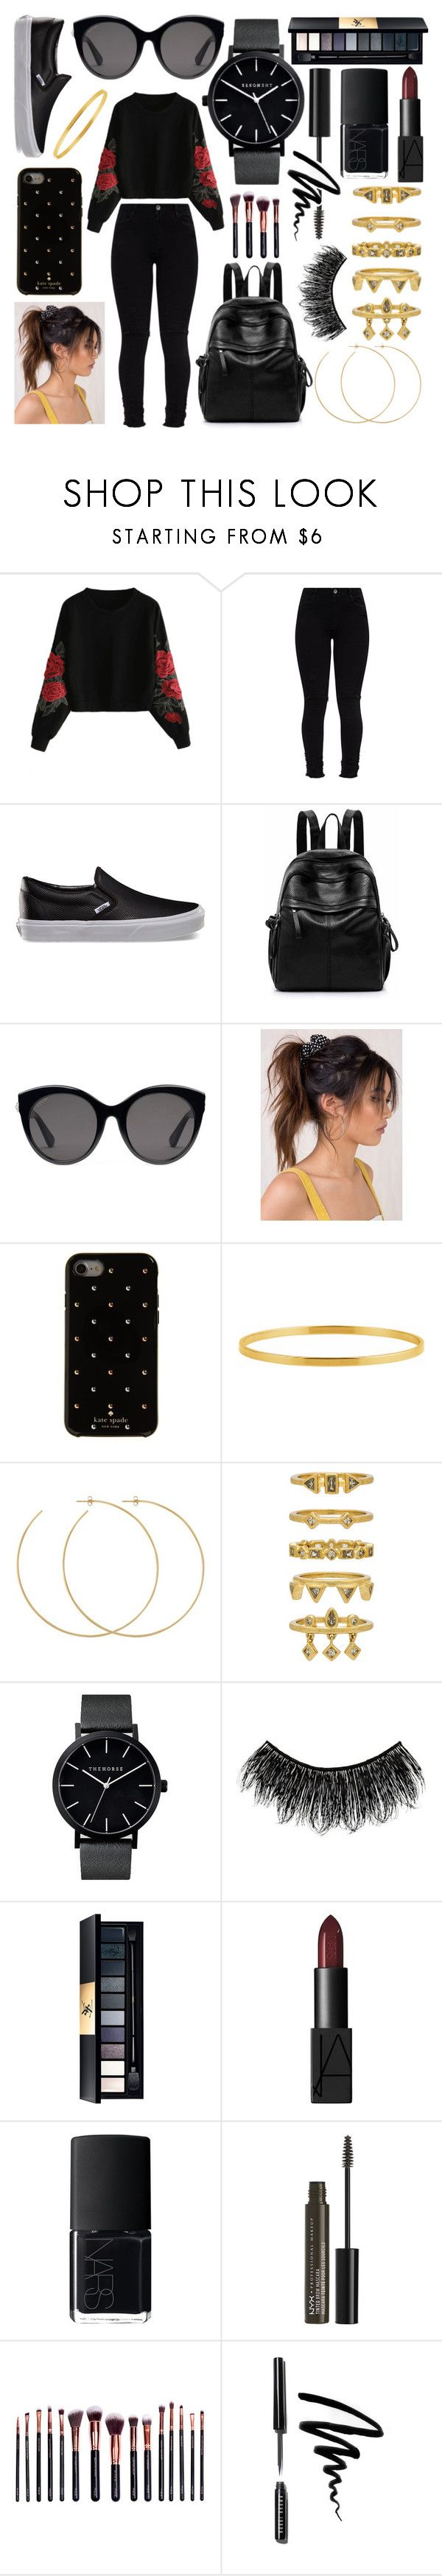 """Black Friday"" by arushipatil ❤ liked on Polyvore featuring Vans, Gucci, Kate Spade, Allison Bryan, Luv Aj, Illamasqua, John Lewis, NARS Cosmetics, NYX and M.O.T.D Cosmetics"